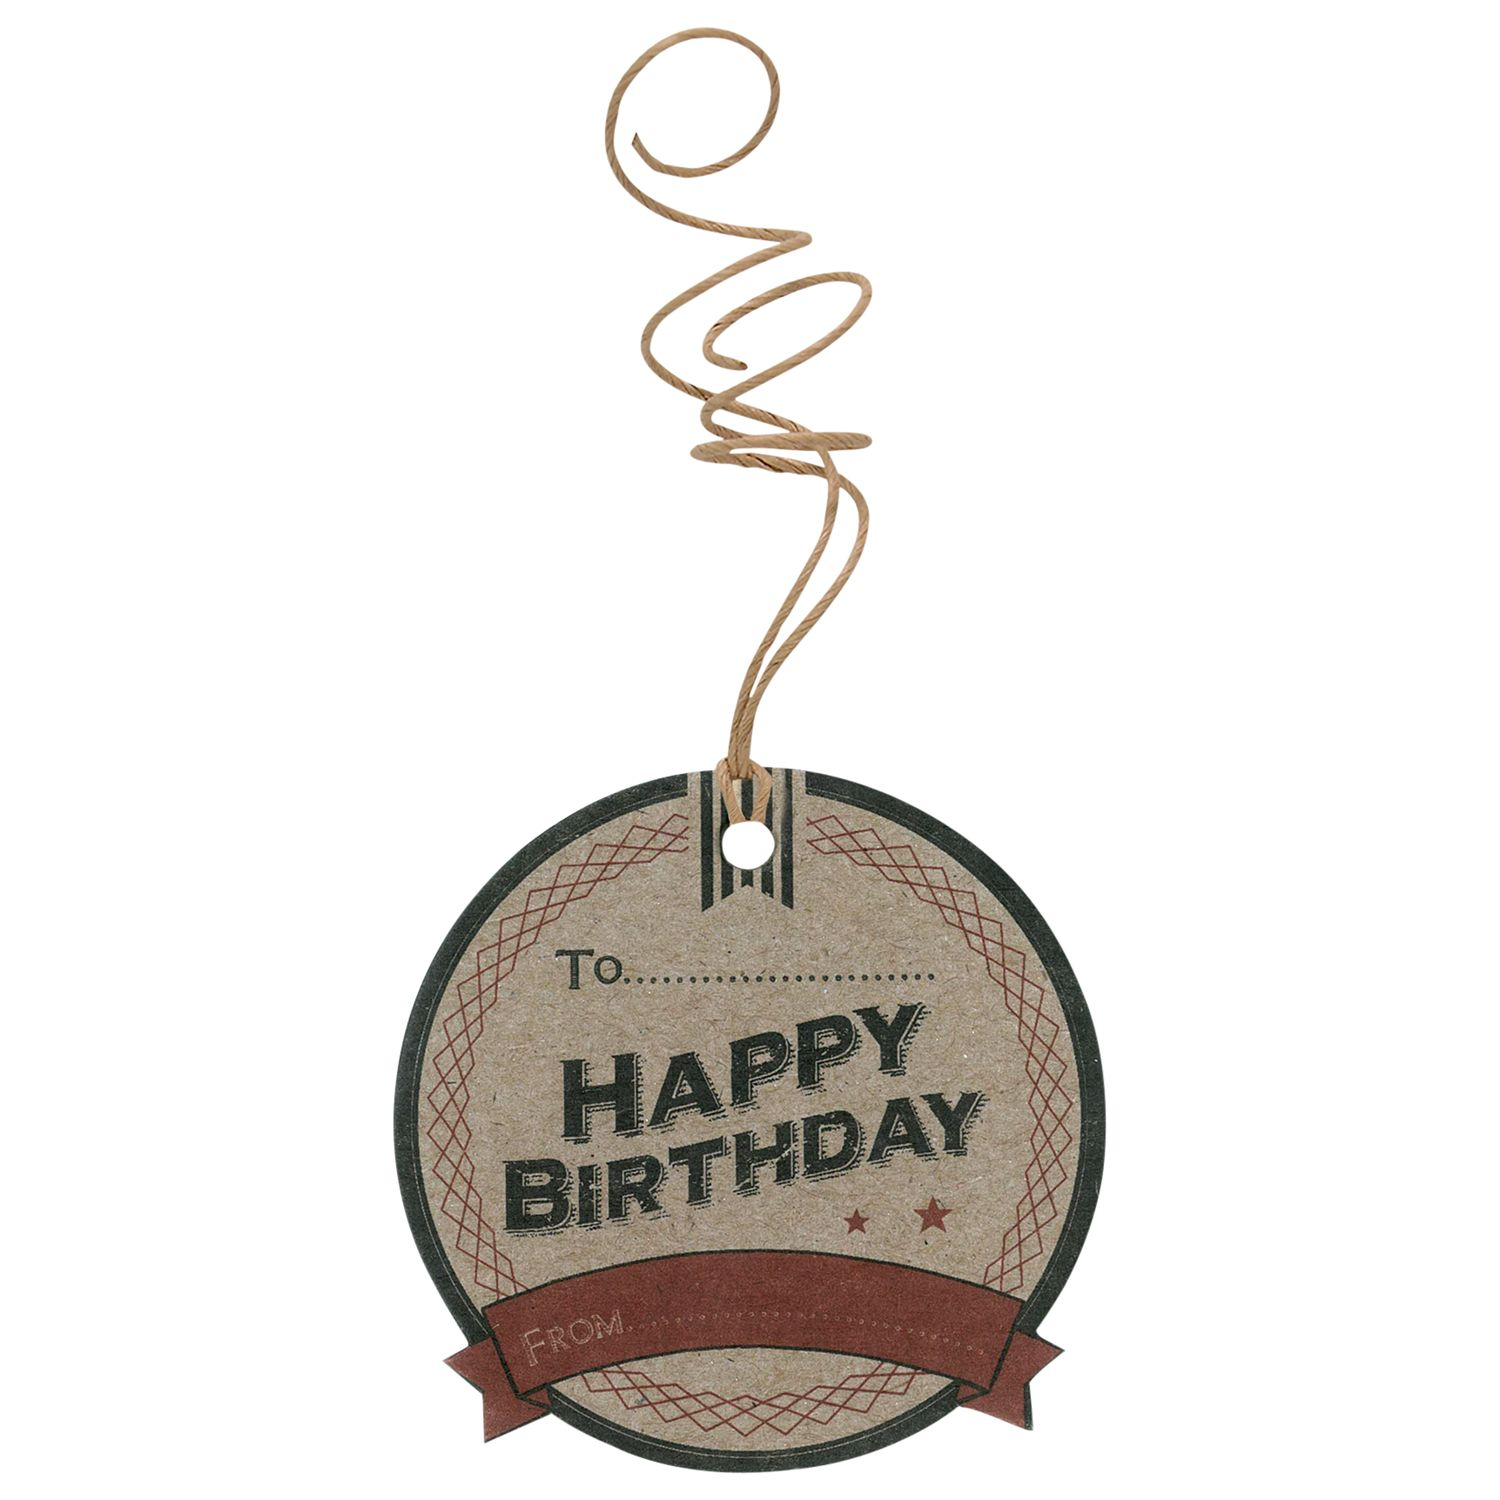 East of India East of India Happy Birthday Gift Tags, Pack of 6, Brown